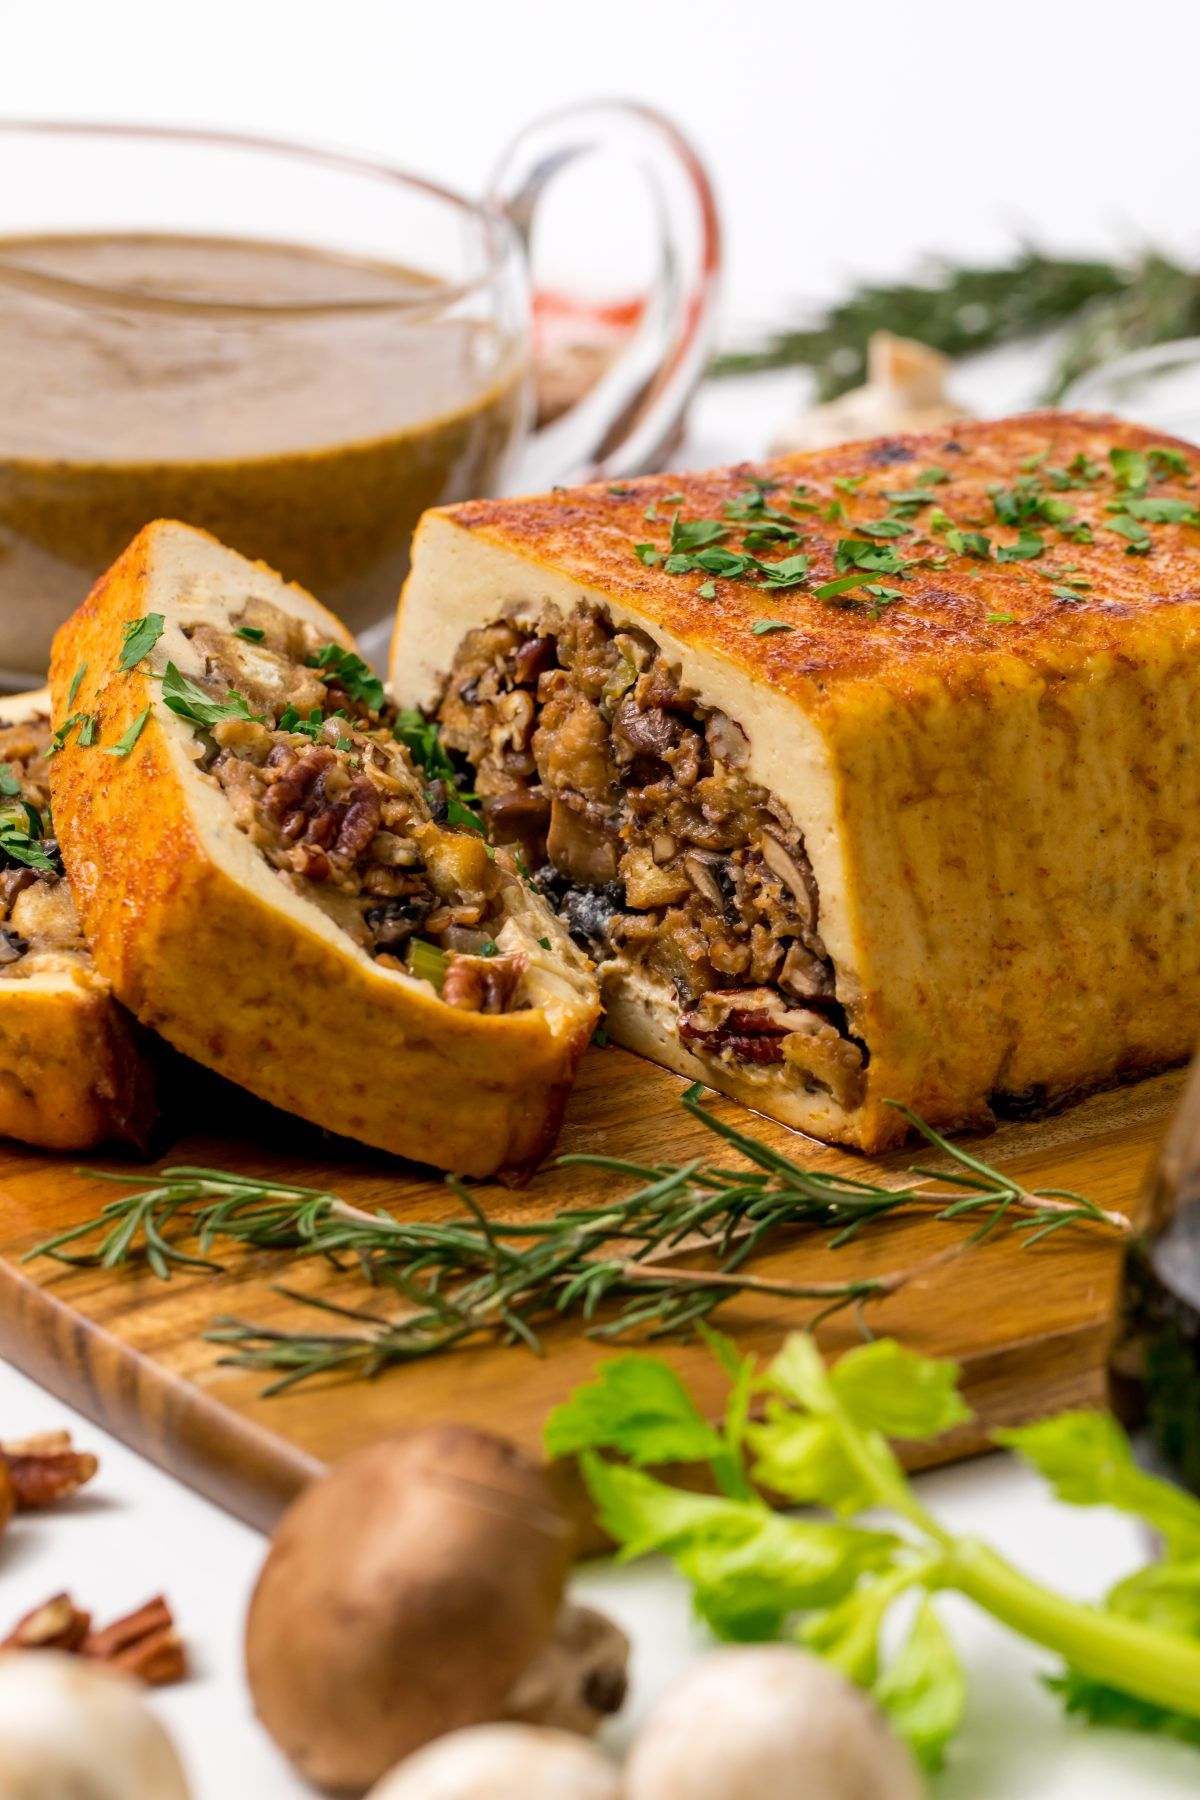 Vegans Rejoice A Tofurky With Mushroom Stuffing And Gravy Is All You Need For A Perfect Thanksgiving Dinner Recipe Tofurky Vegan Thanksgiving Vegan Thanksgiving Dinner